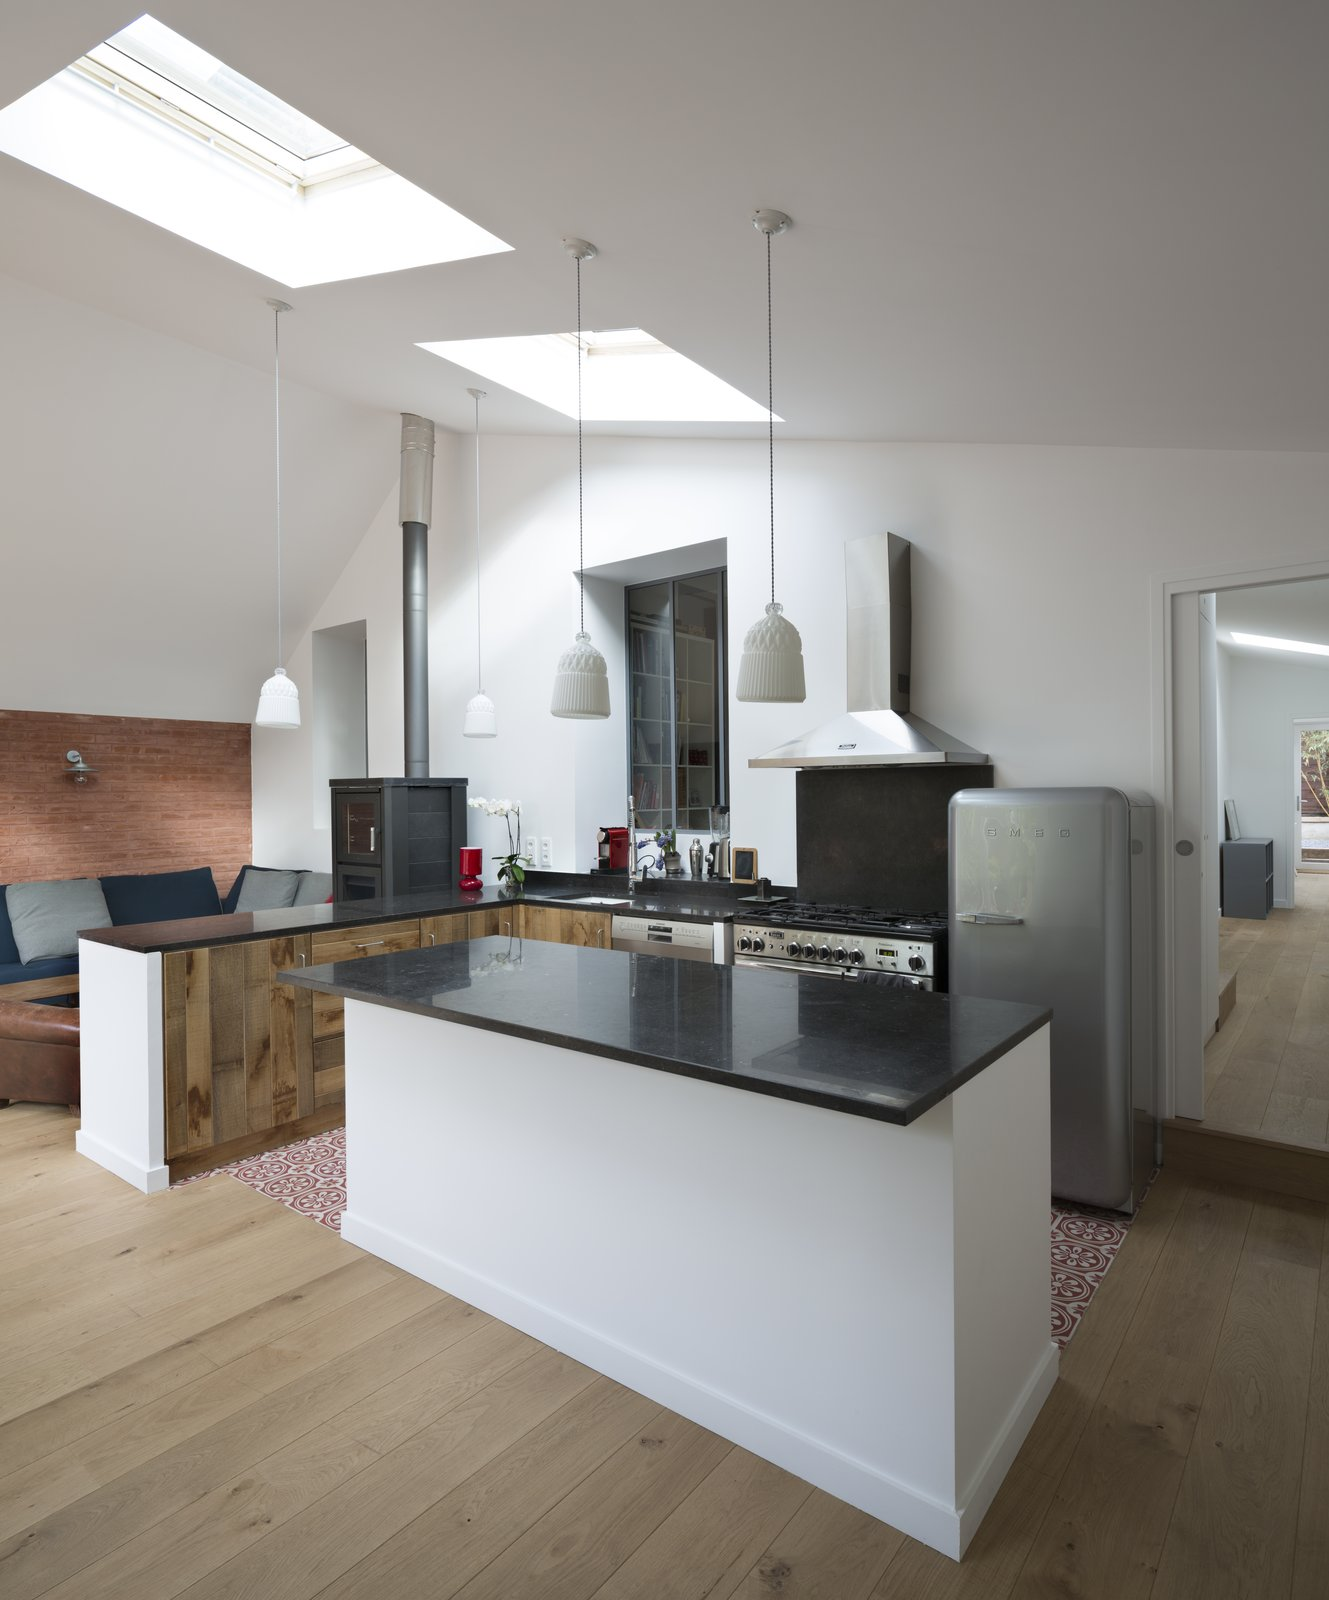 The kitchen features countertops from Pierre Bleue de Hainaut.  Wisteria Residence by Kelly Dawson